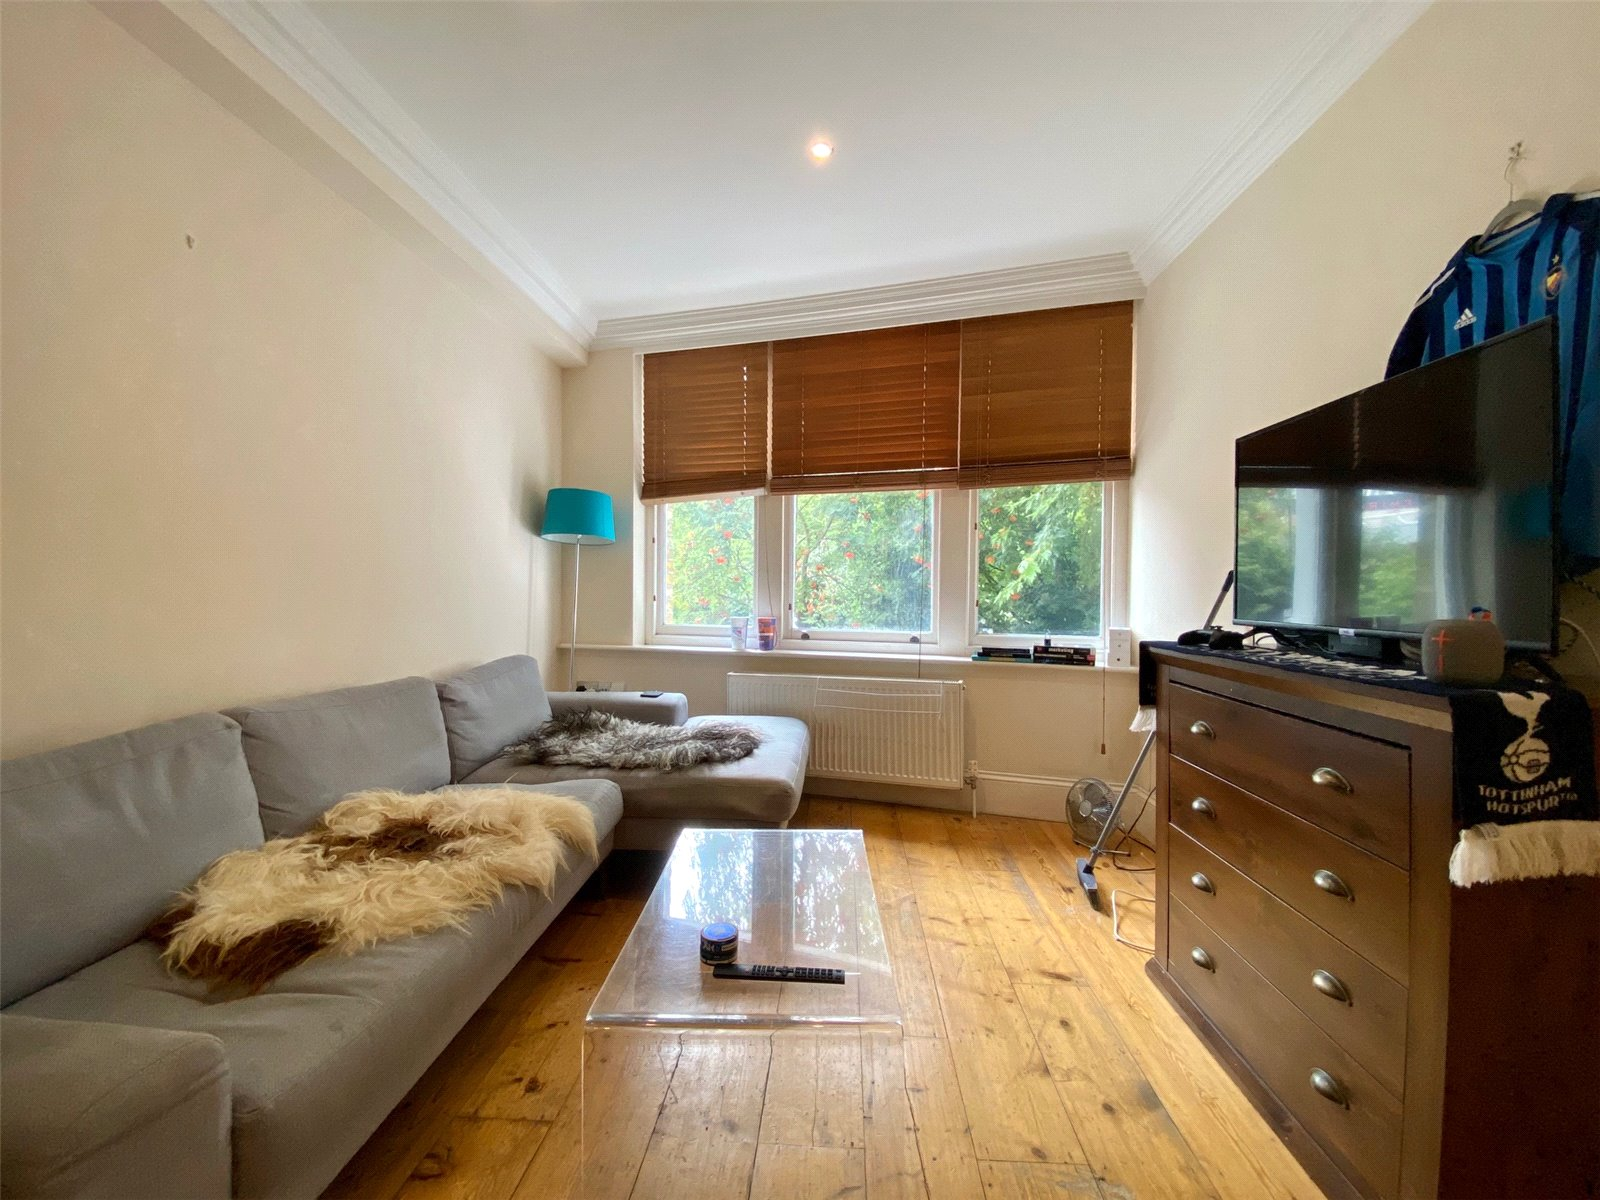 2 bed apartment for sale in Arsenal, N5 1LU 0